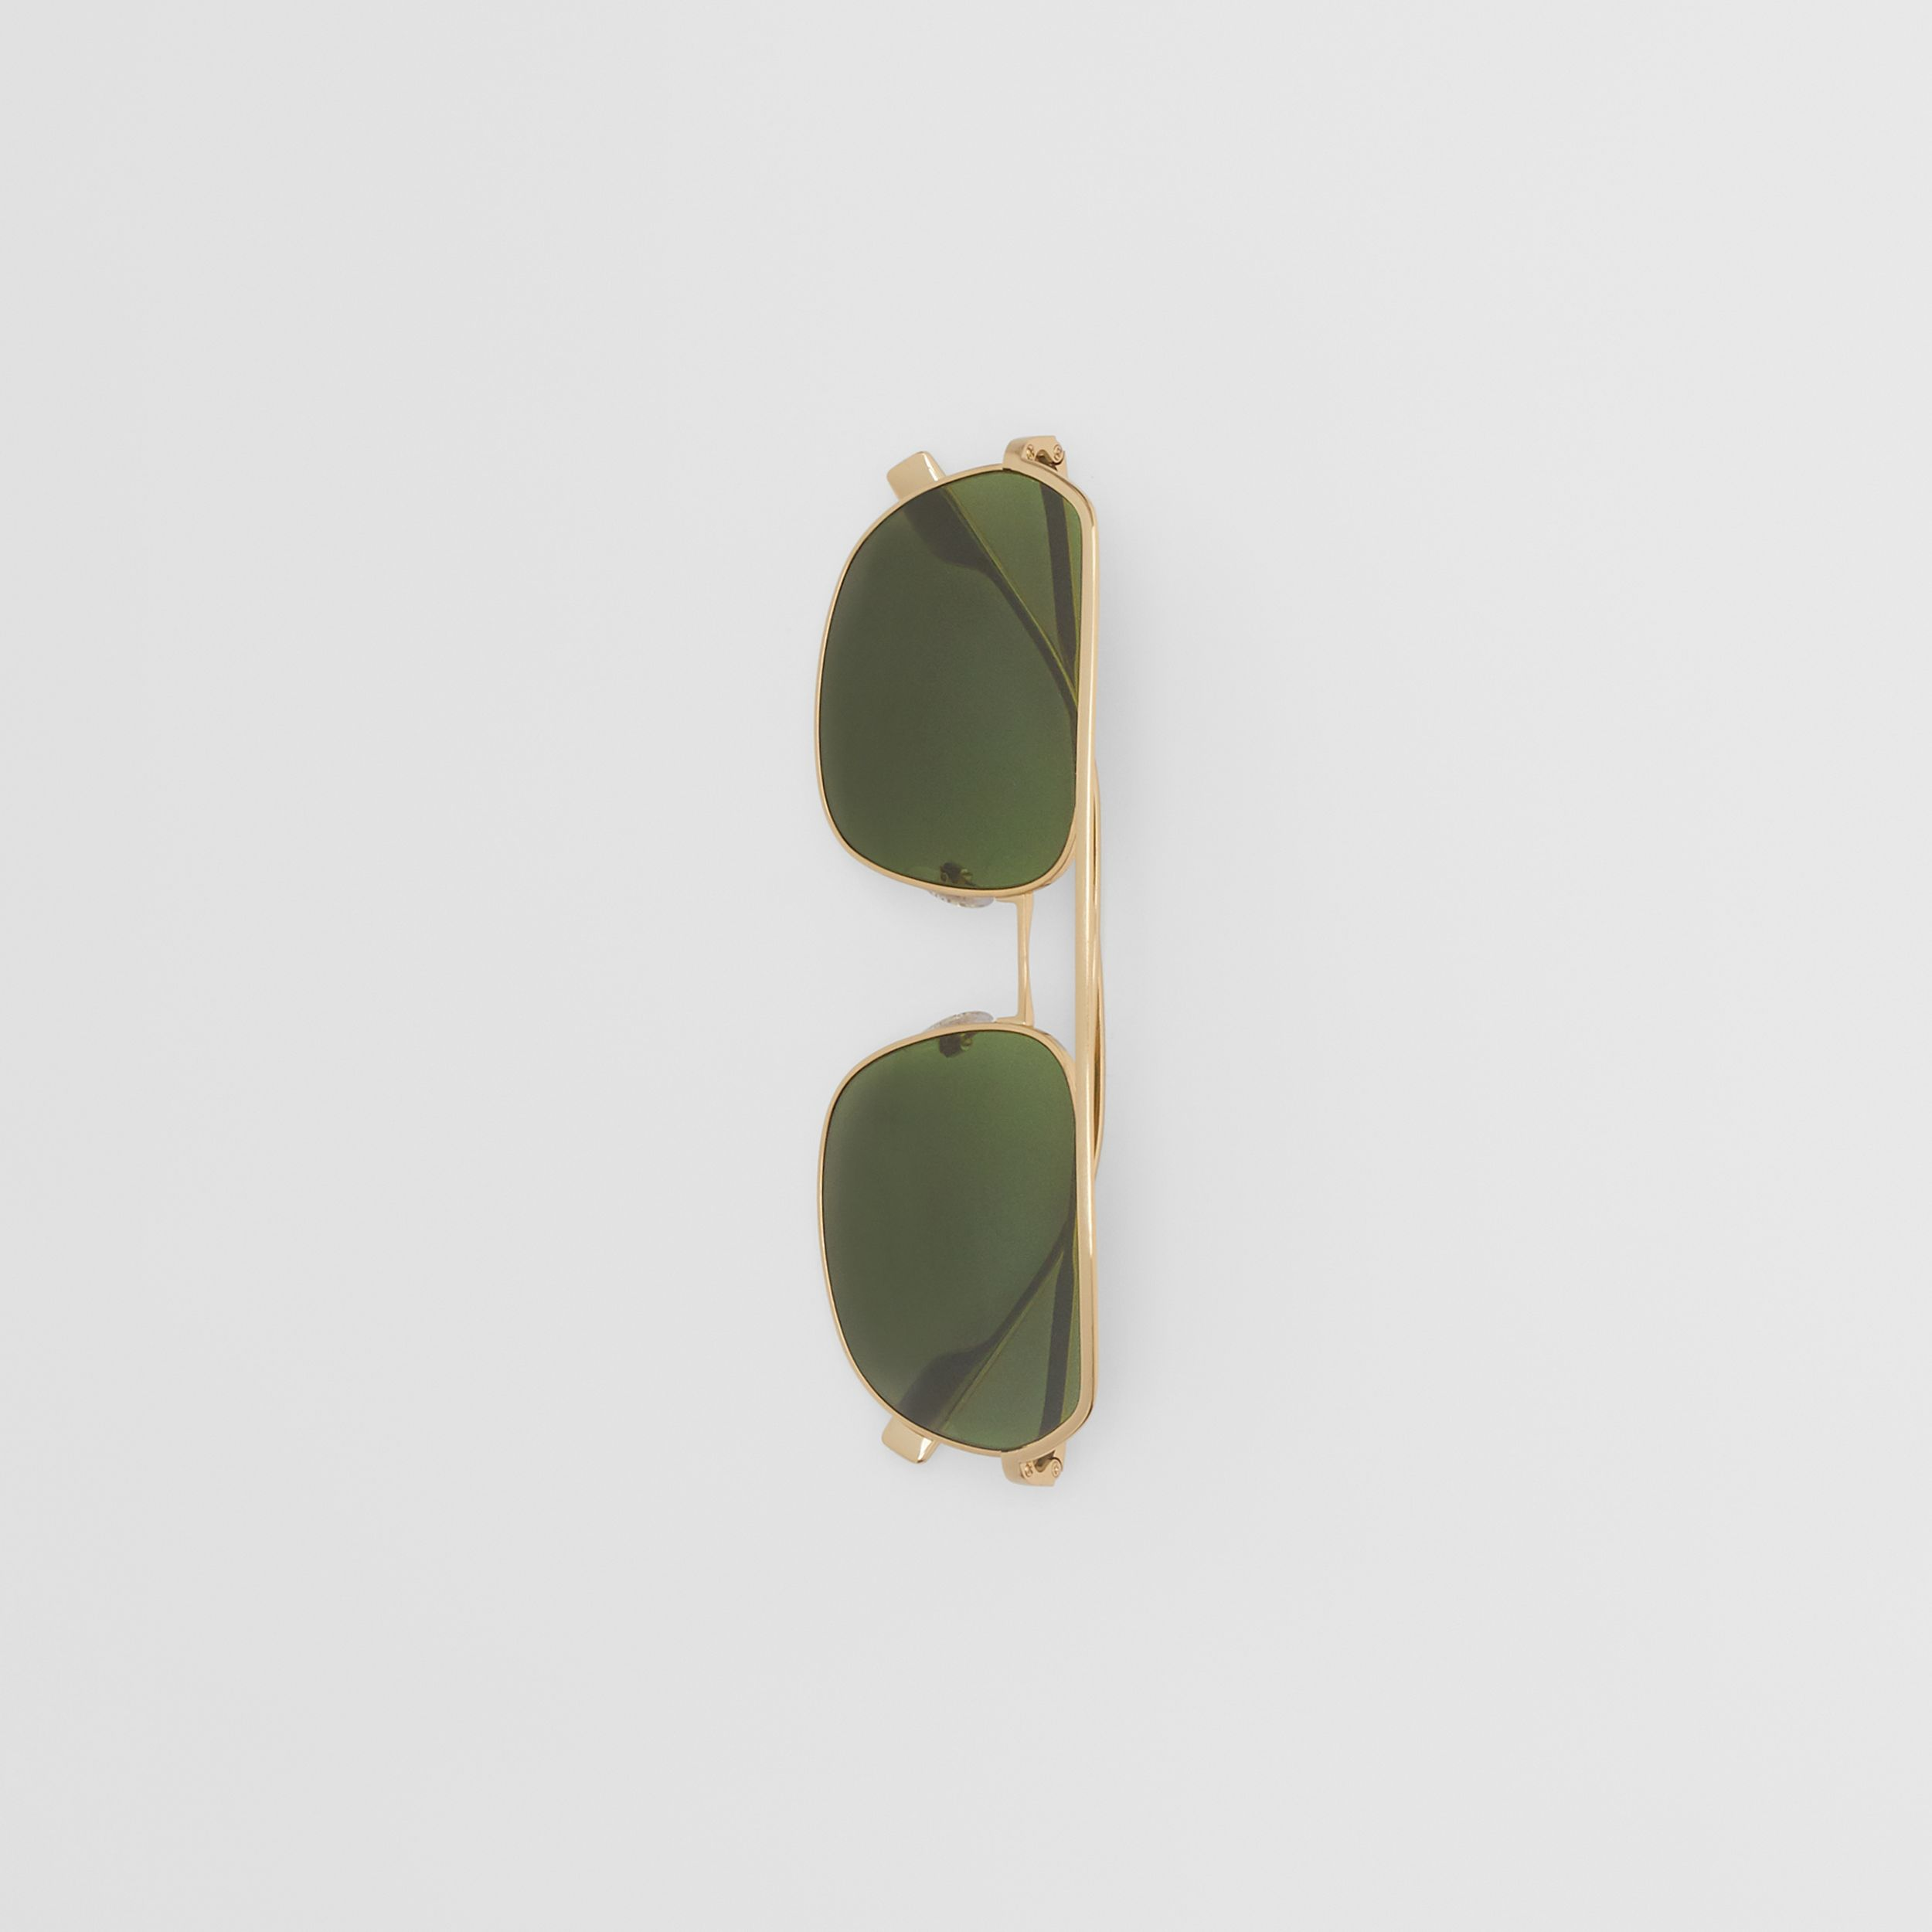 Square Pilot Sunglasses in Vintage Brushed Gold - Men | Burberry - 4